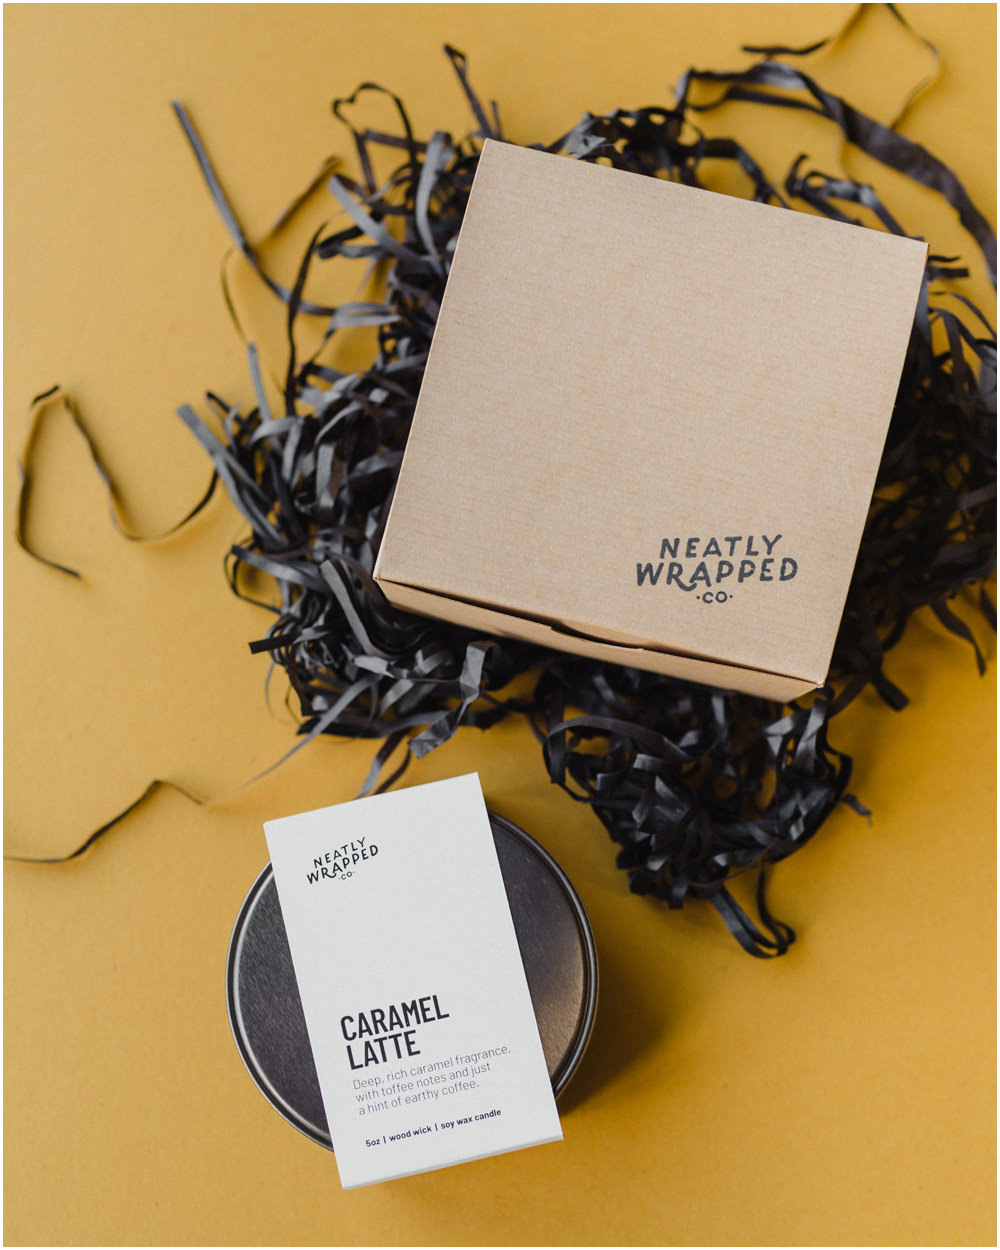 sustainable-candles-glasgow-scotland-neatly-wrapped.jpg